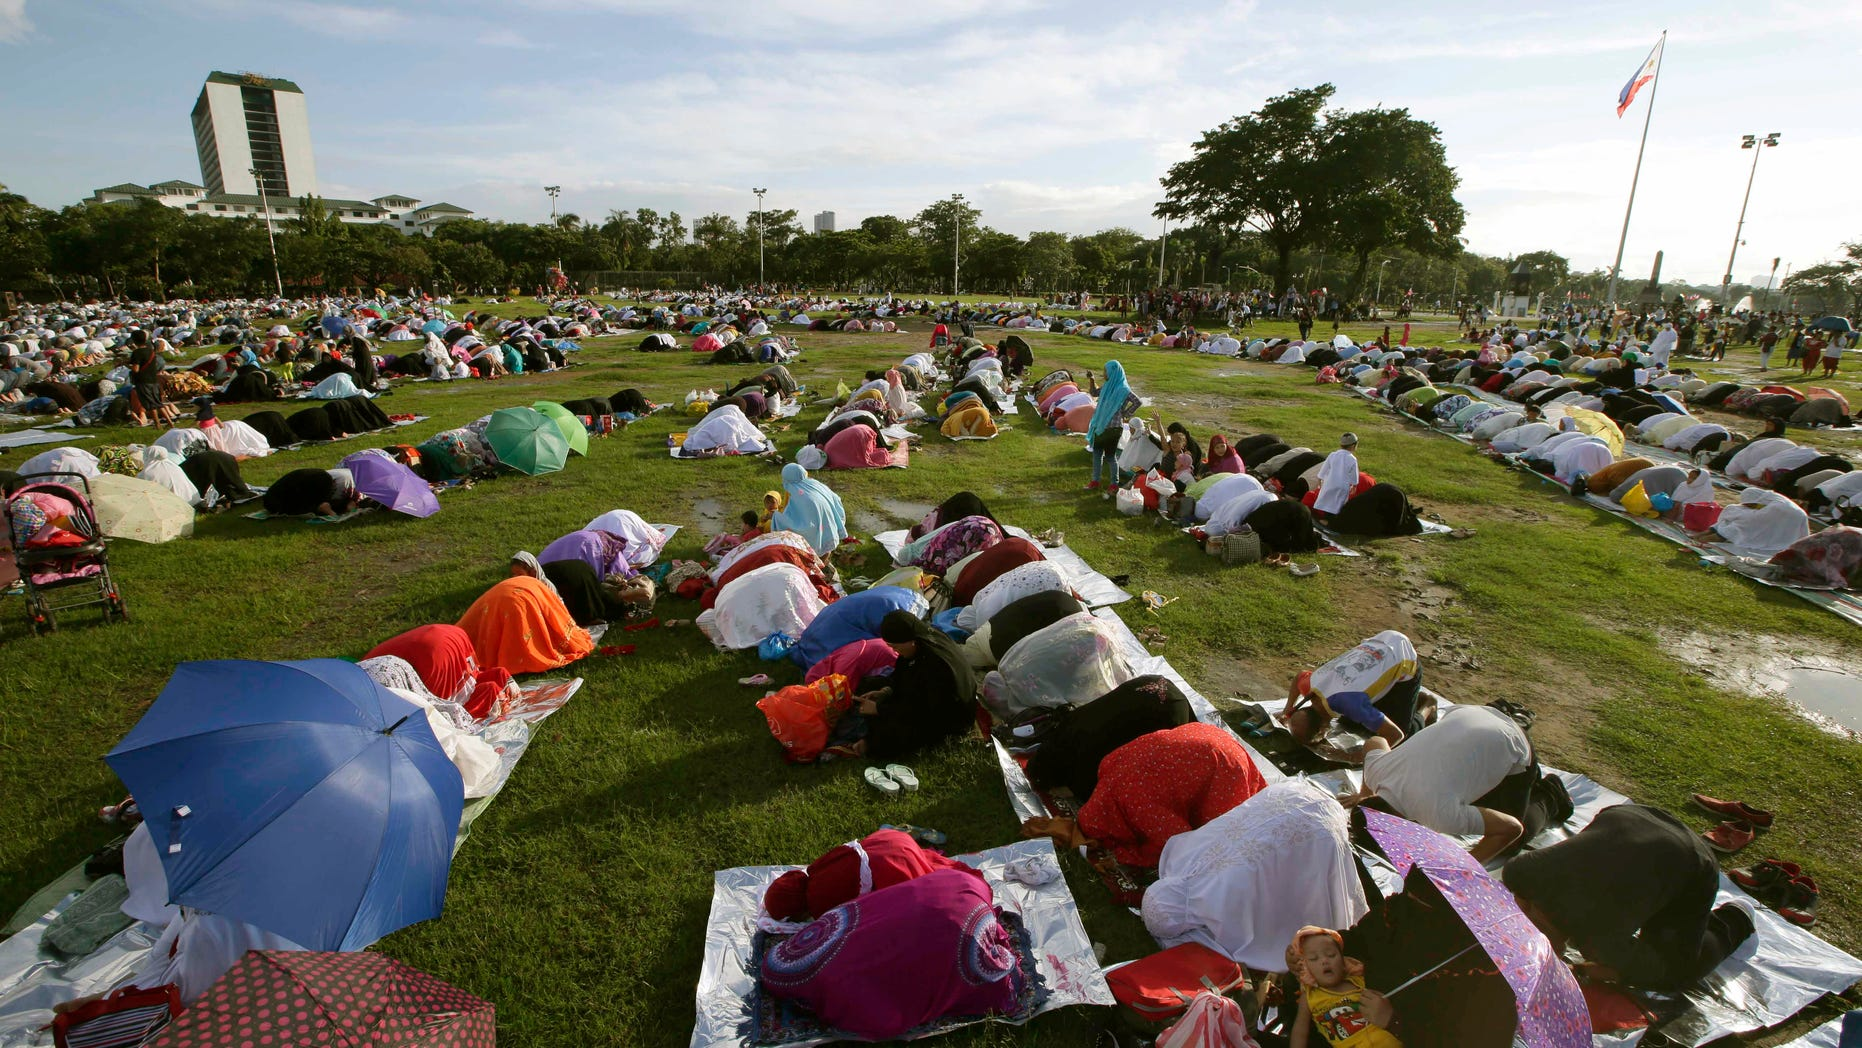 July 28, 2014 - Filipino Muslims gather at Manila's Rizal Park to pray in celebration of Eid al-Fitr marking the end of the holy month of Ramadan, in Manila, Philippines. Abu Sayyaf gunmen killed at least 21 villagers, including women and children, traveling to visit relatives and celebrate the end of Ramadan, military officials said.